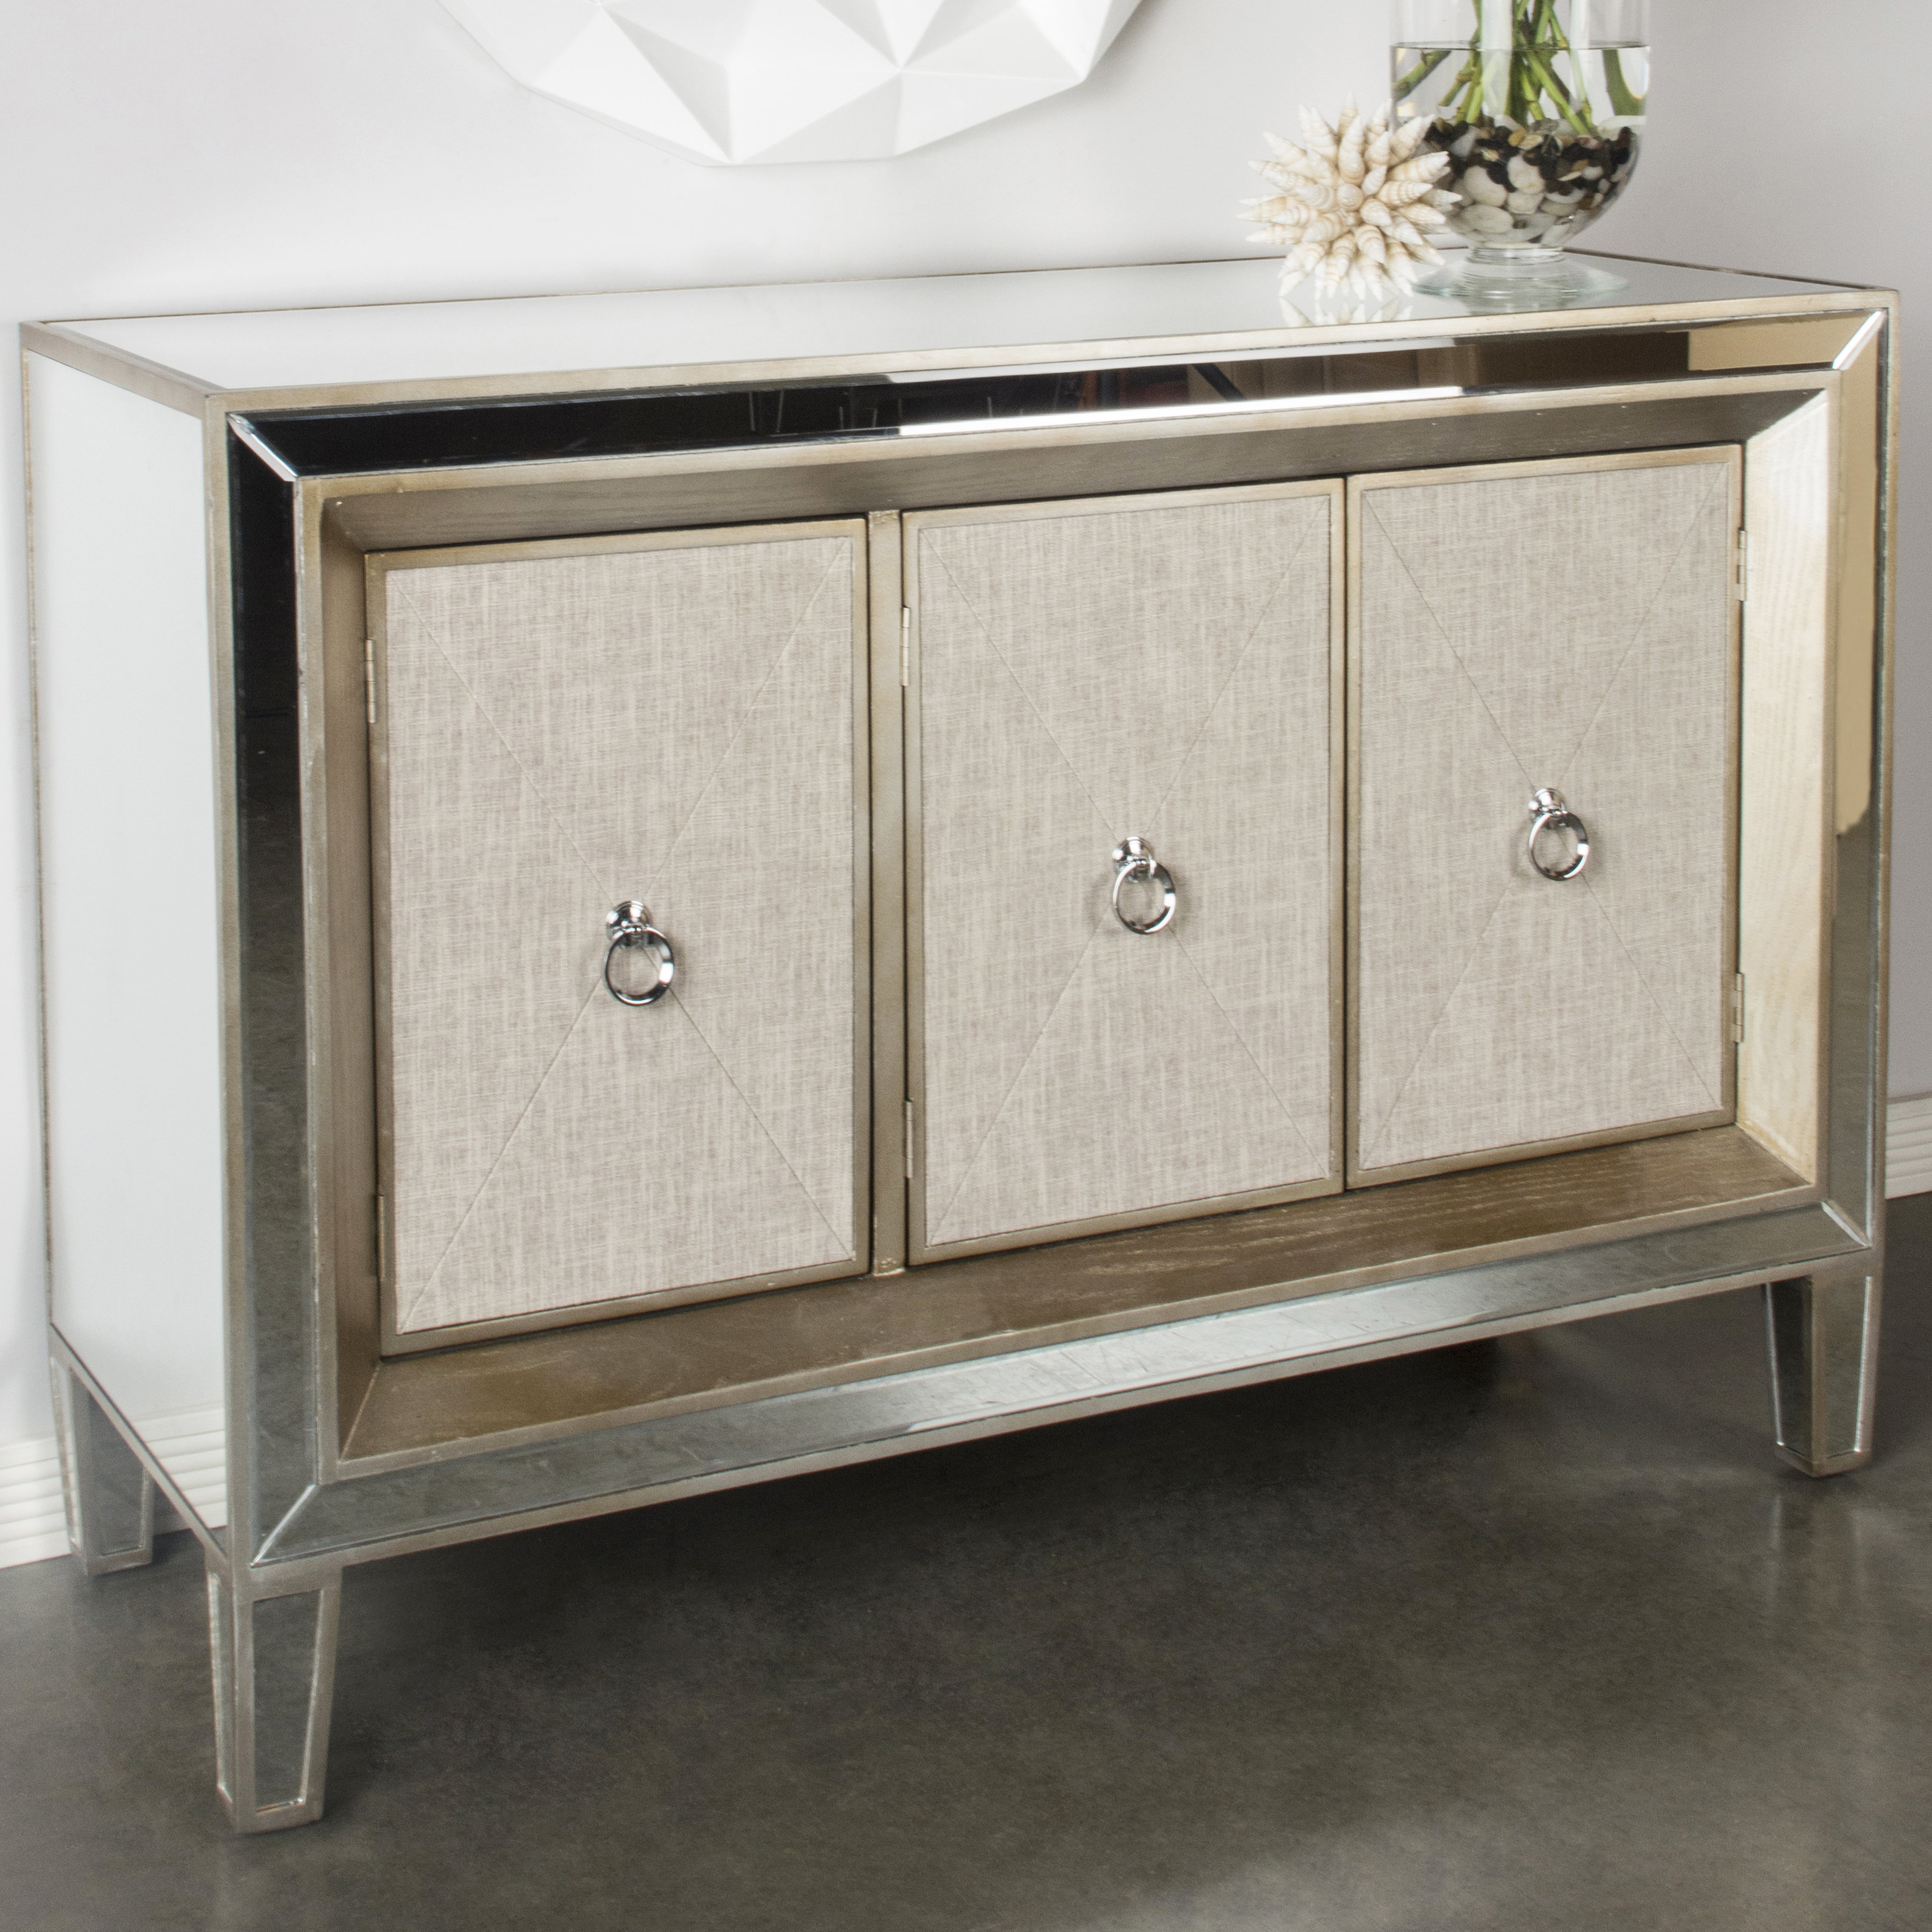 Gold & Silver Sideboards & Buffets You'll Love In 2019 | Wayfair Regarding Armelle Sideboards (Gallery 11 of 20)